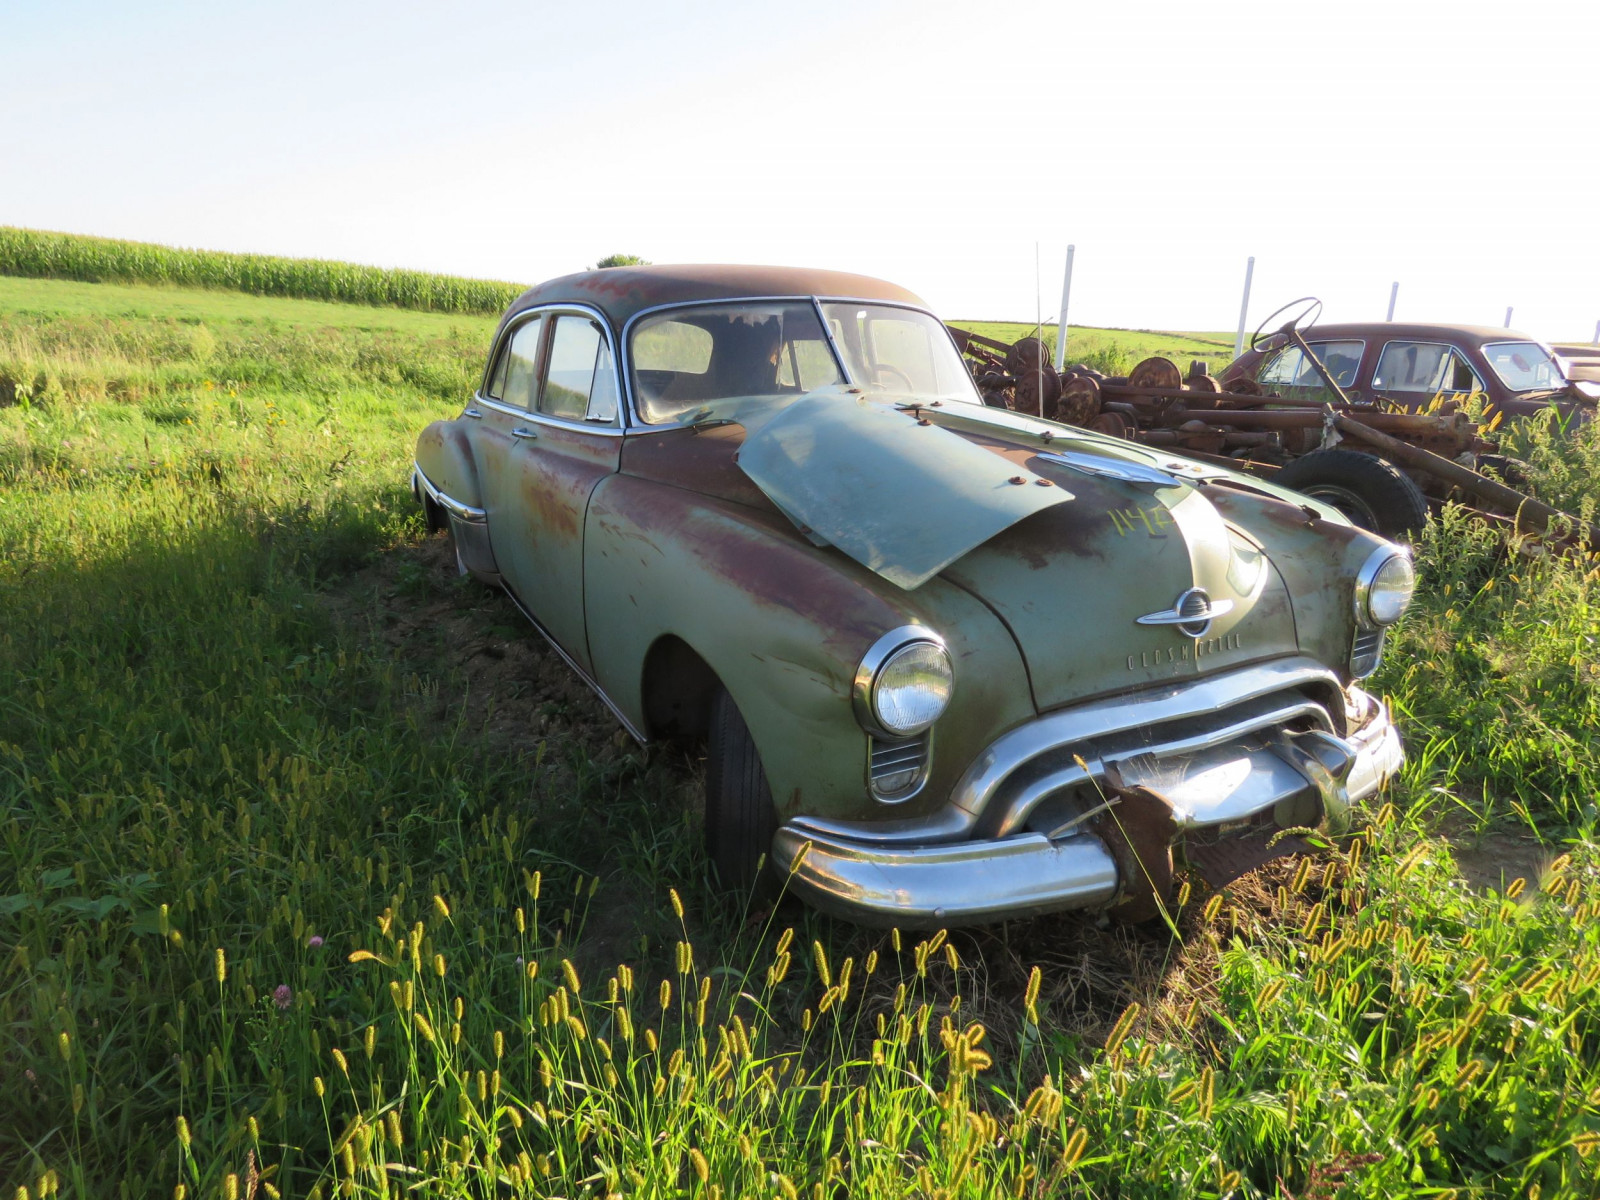 1949 Oldsmobile 4dr Sedan for Project or Parts - Image 1